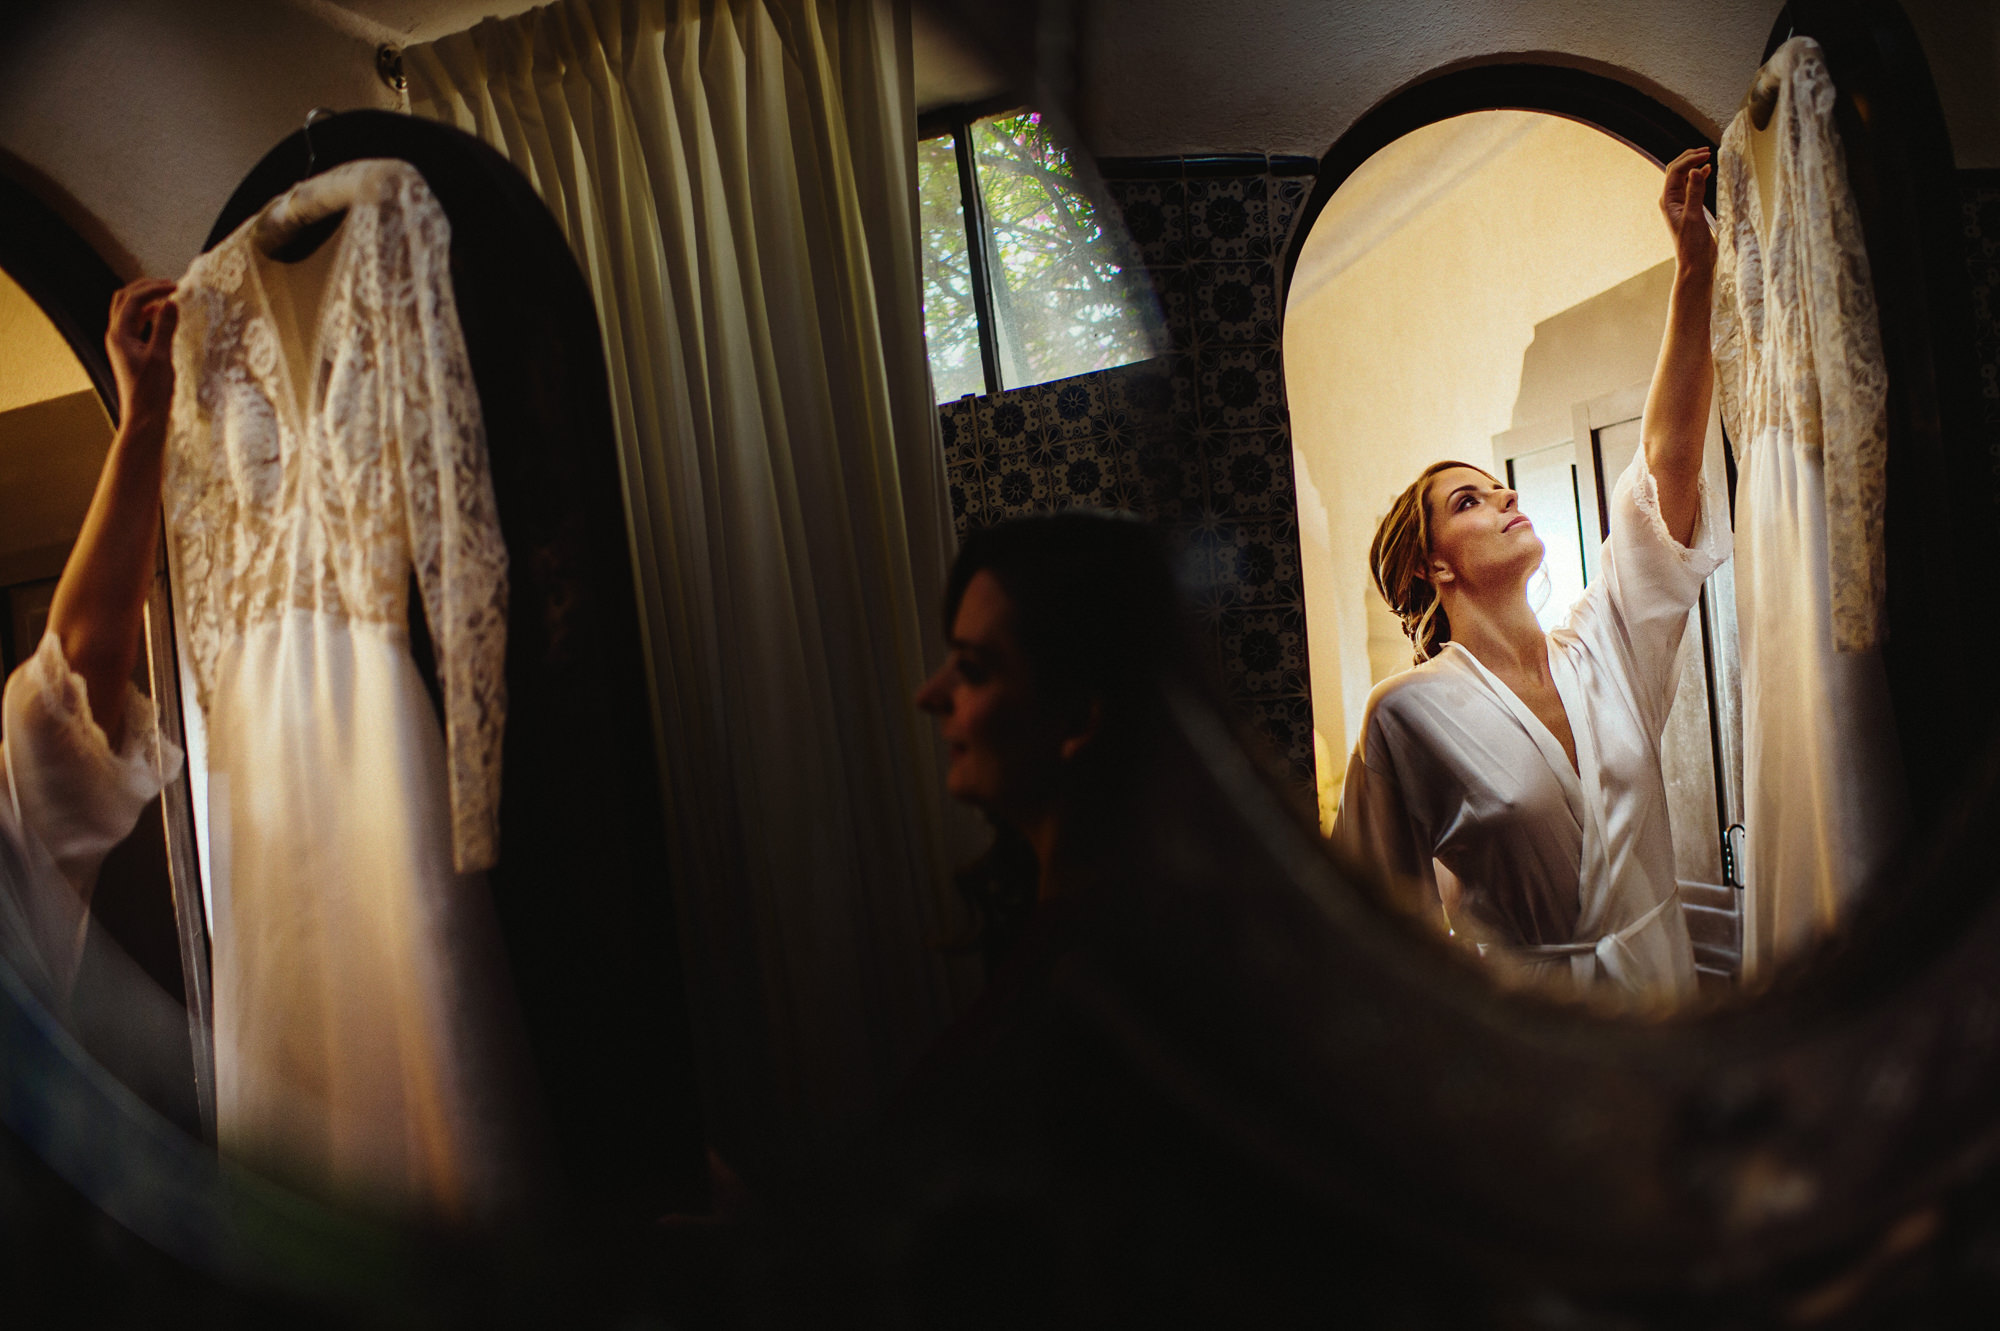 Bride in silk robe reaches for wedding gown - photo by Fer Juaristi